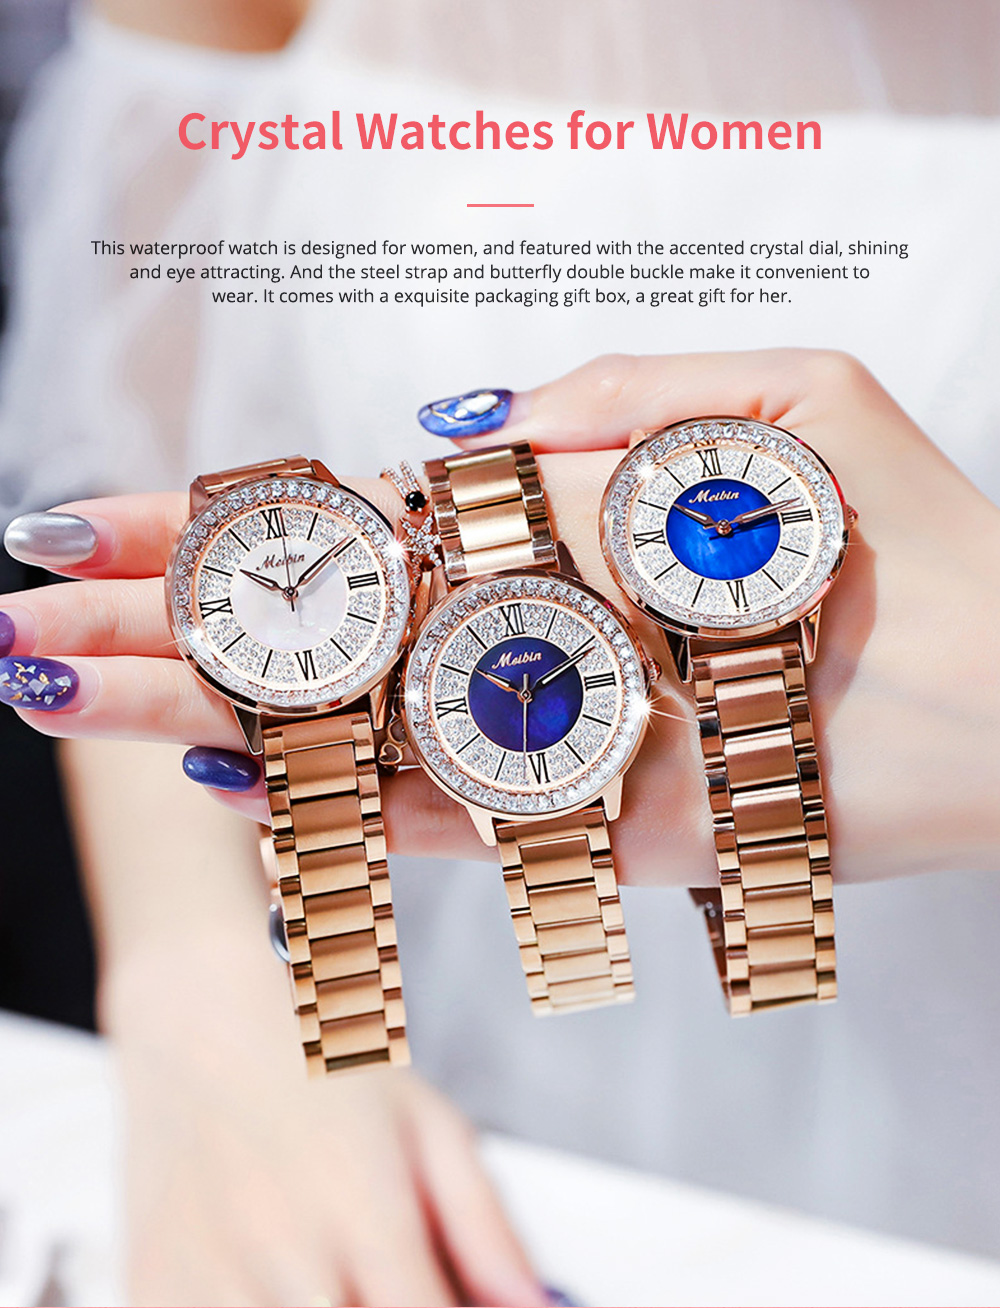 MEIBIN Multifunctional Watch for Women Luxury with Accented Crystal Dial and Steel Strap Waterproof 0